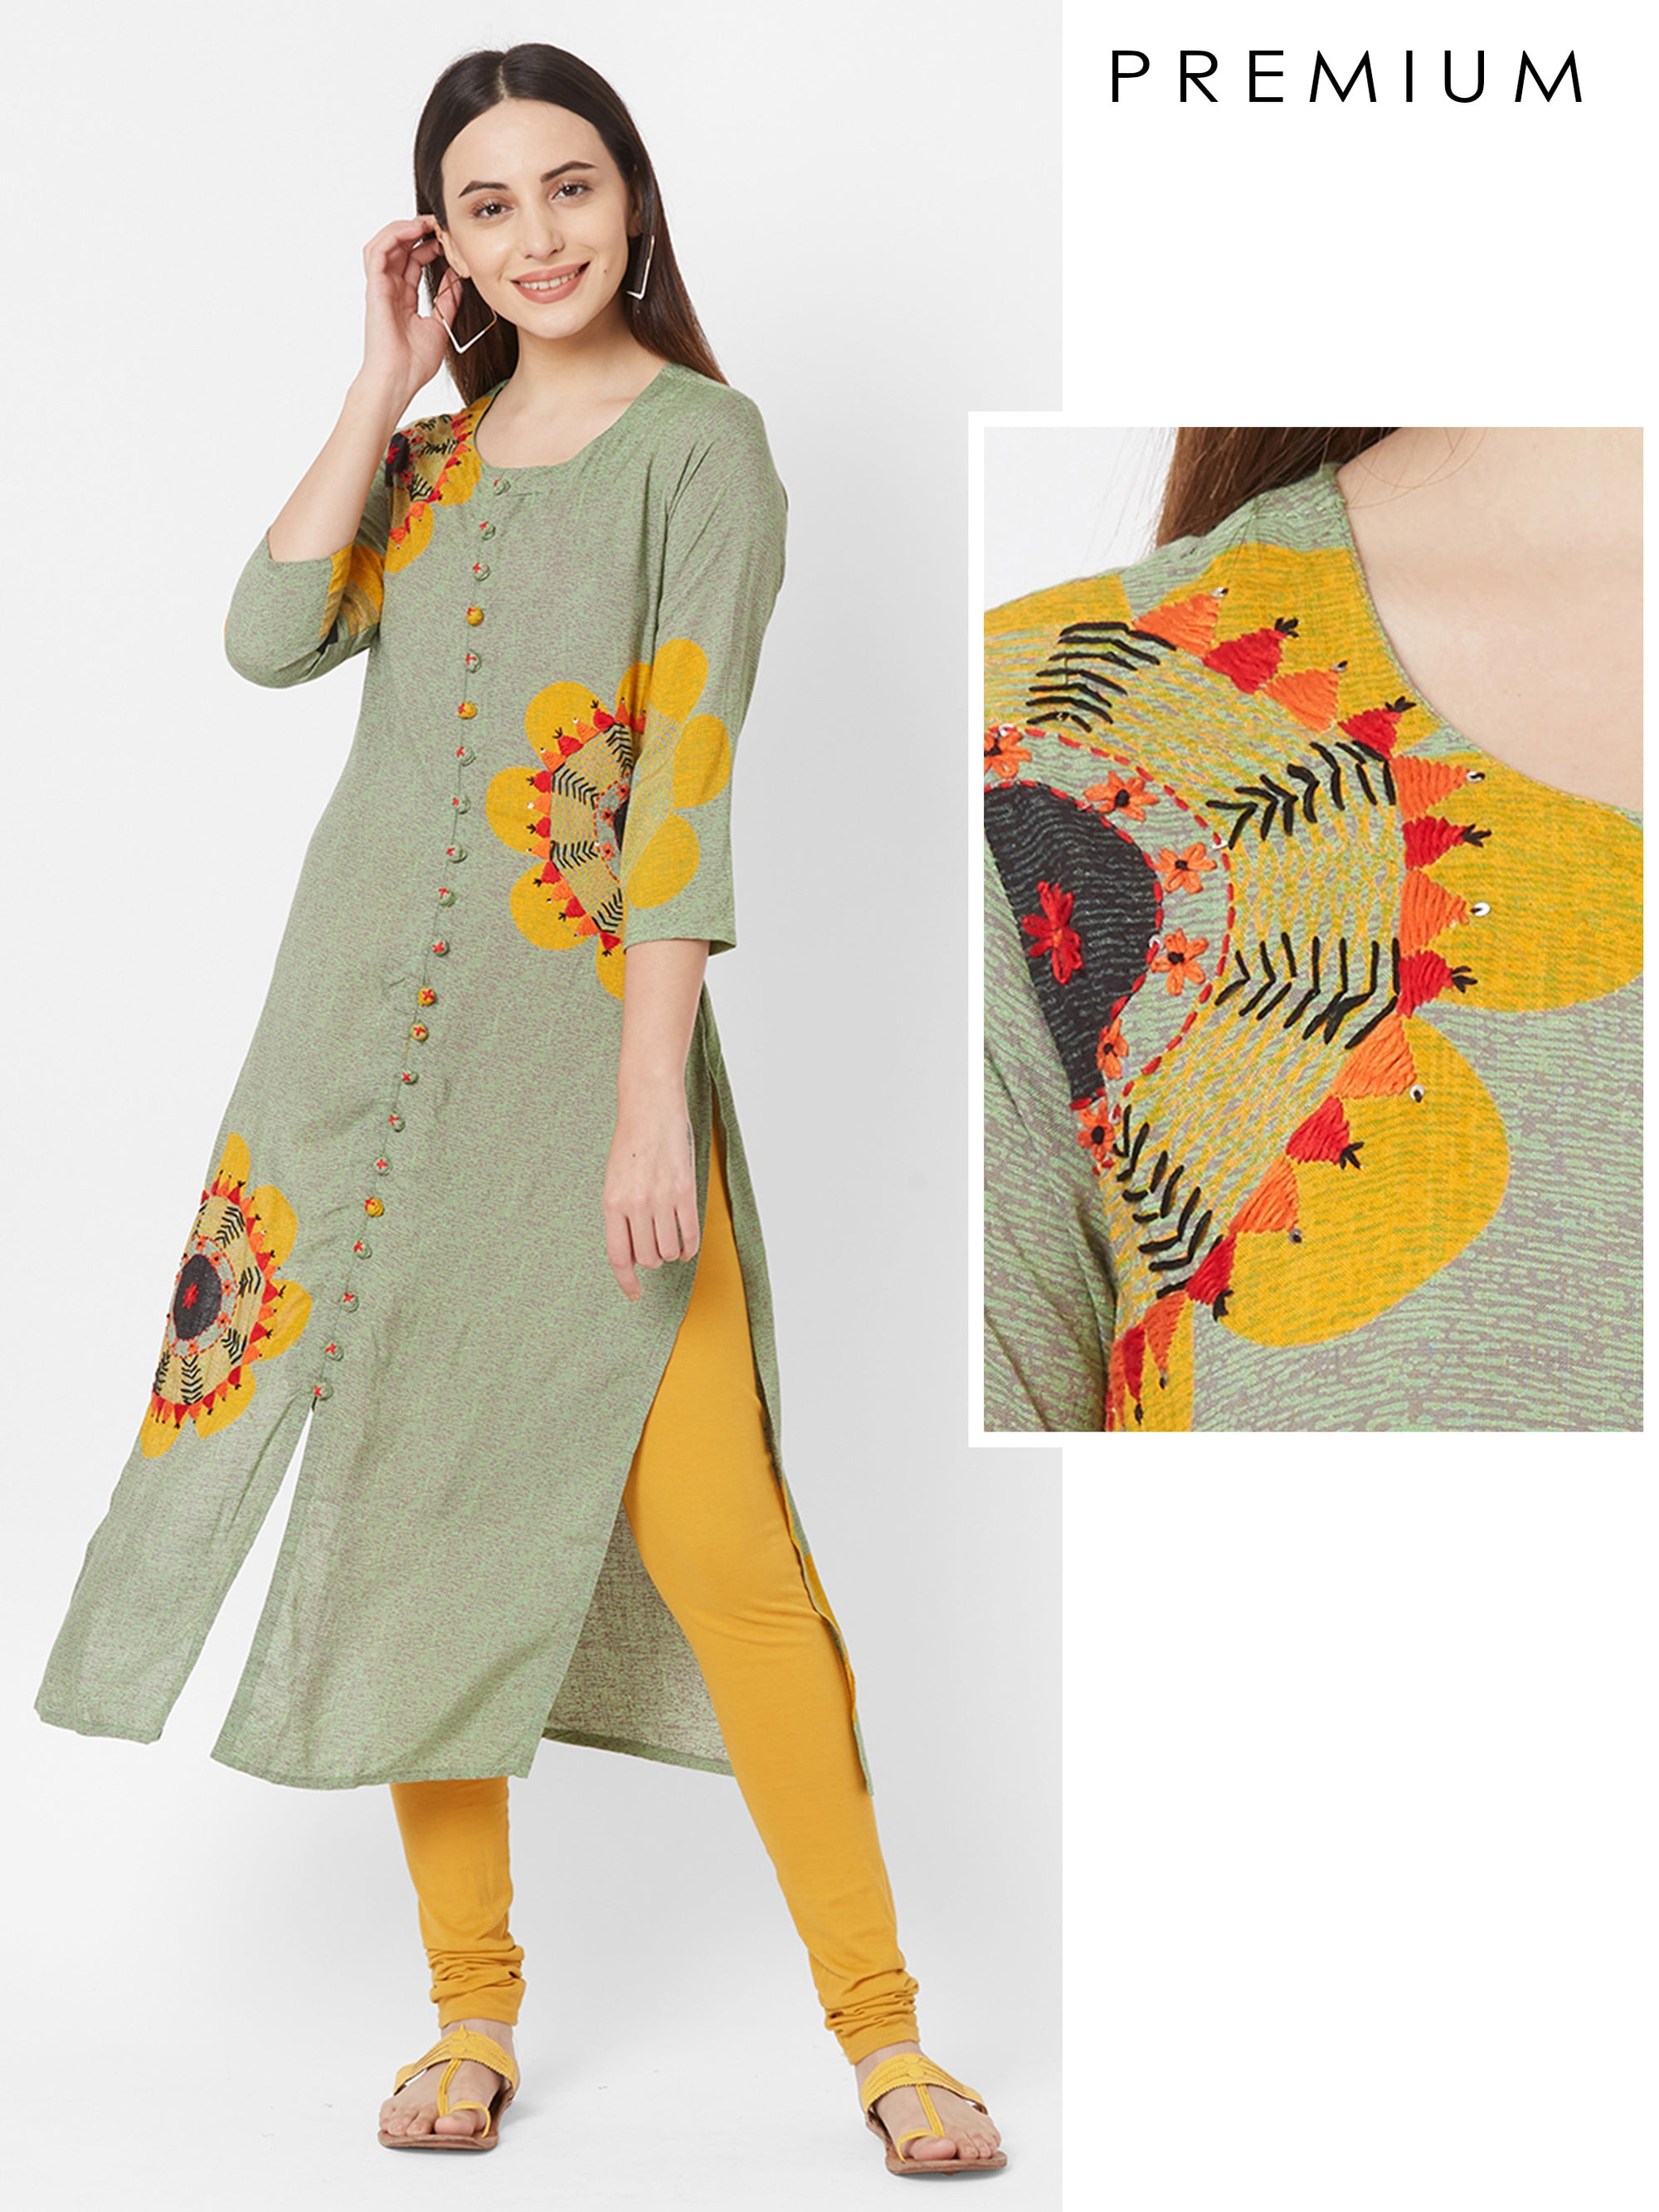 Floral Printed & Hand Embroidered Premium Rayon Kurta – Pale Green